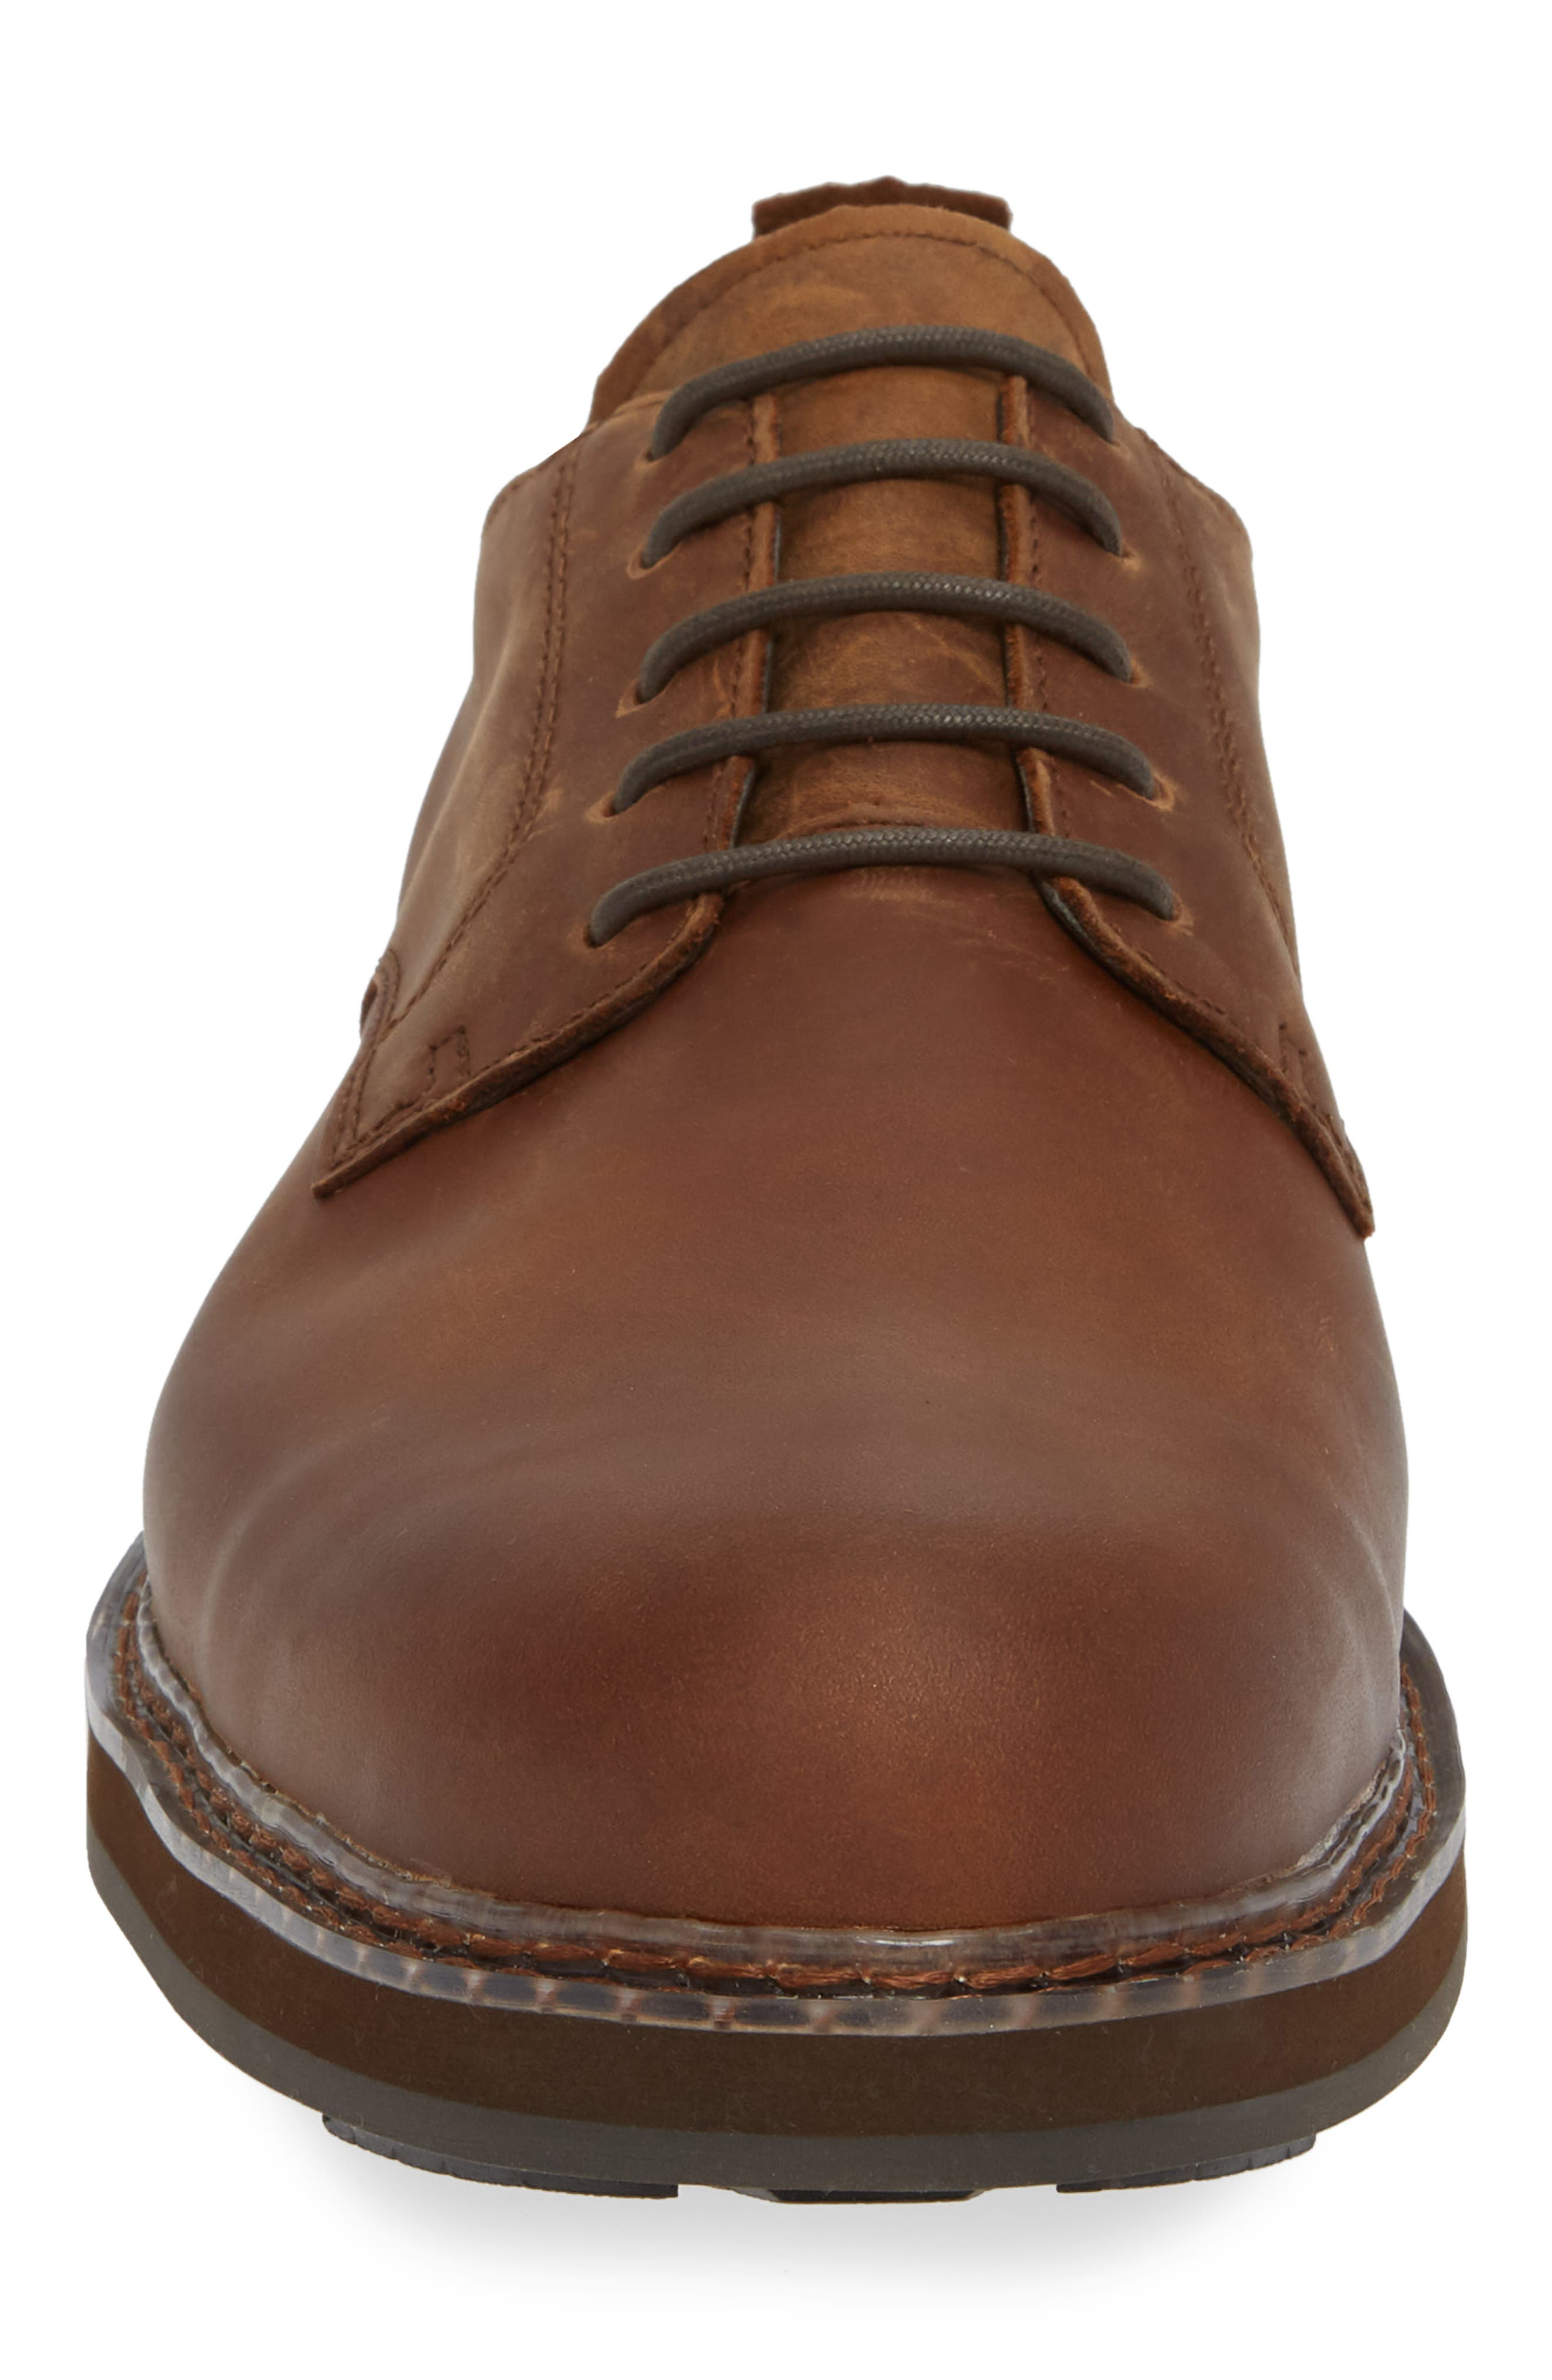 Squall Canyon Waterproof Plain Toe Derby,                             Alternate thumbnail 4, color,                             COPPER LEATHER